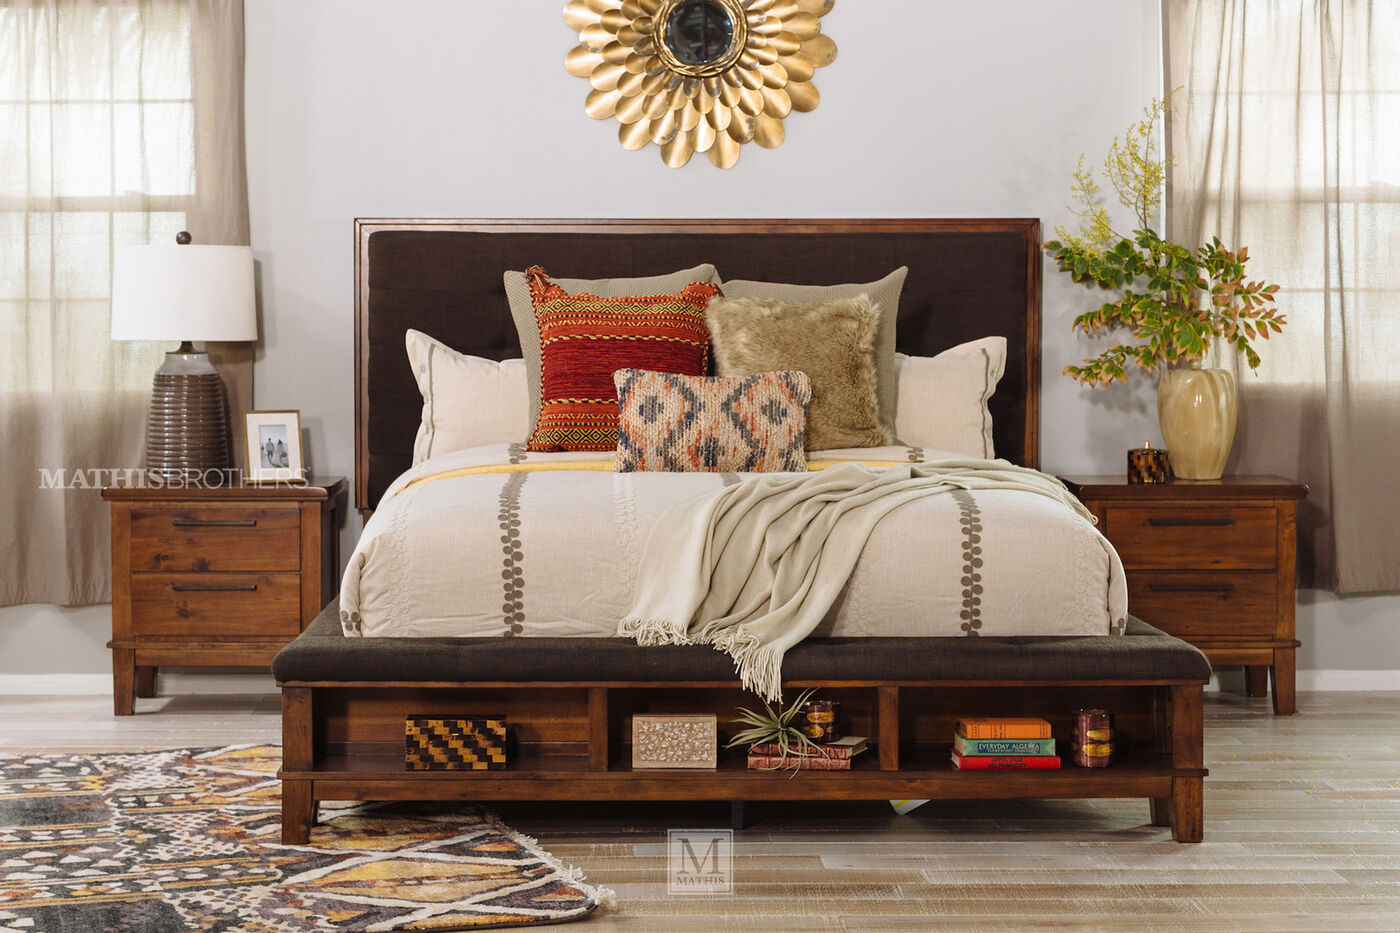 61 Quot Contemporary Tufted Storage Bed In Brown Mathis